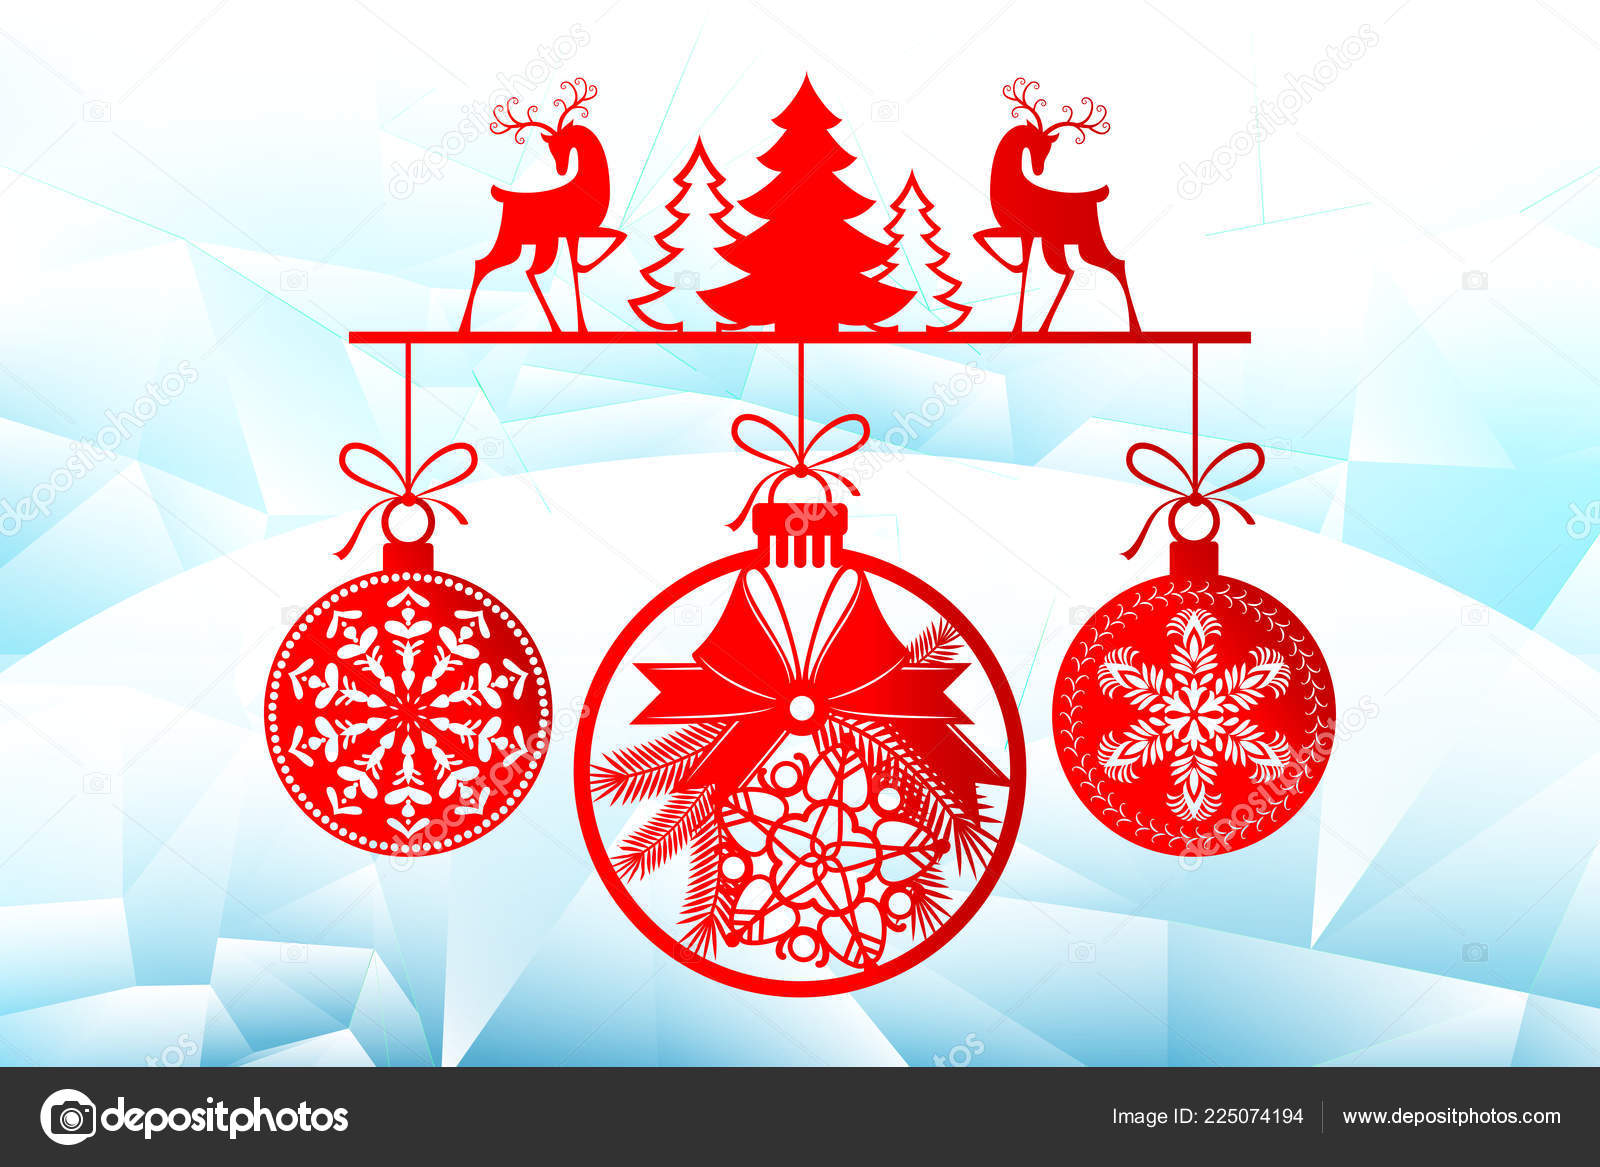 new year christmas laser cutting templates holiday decorations in 2019 on an icy background